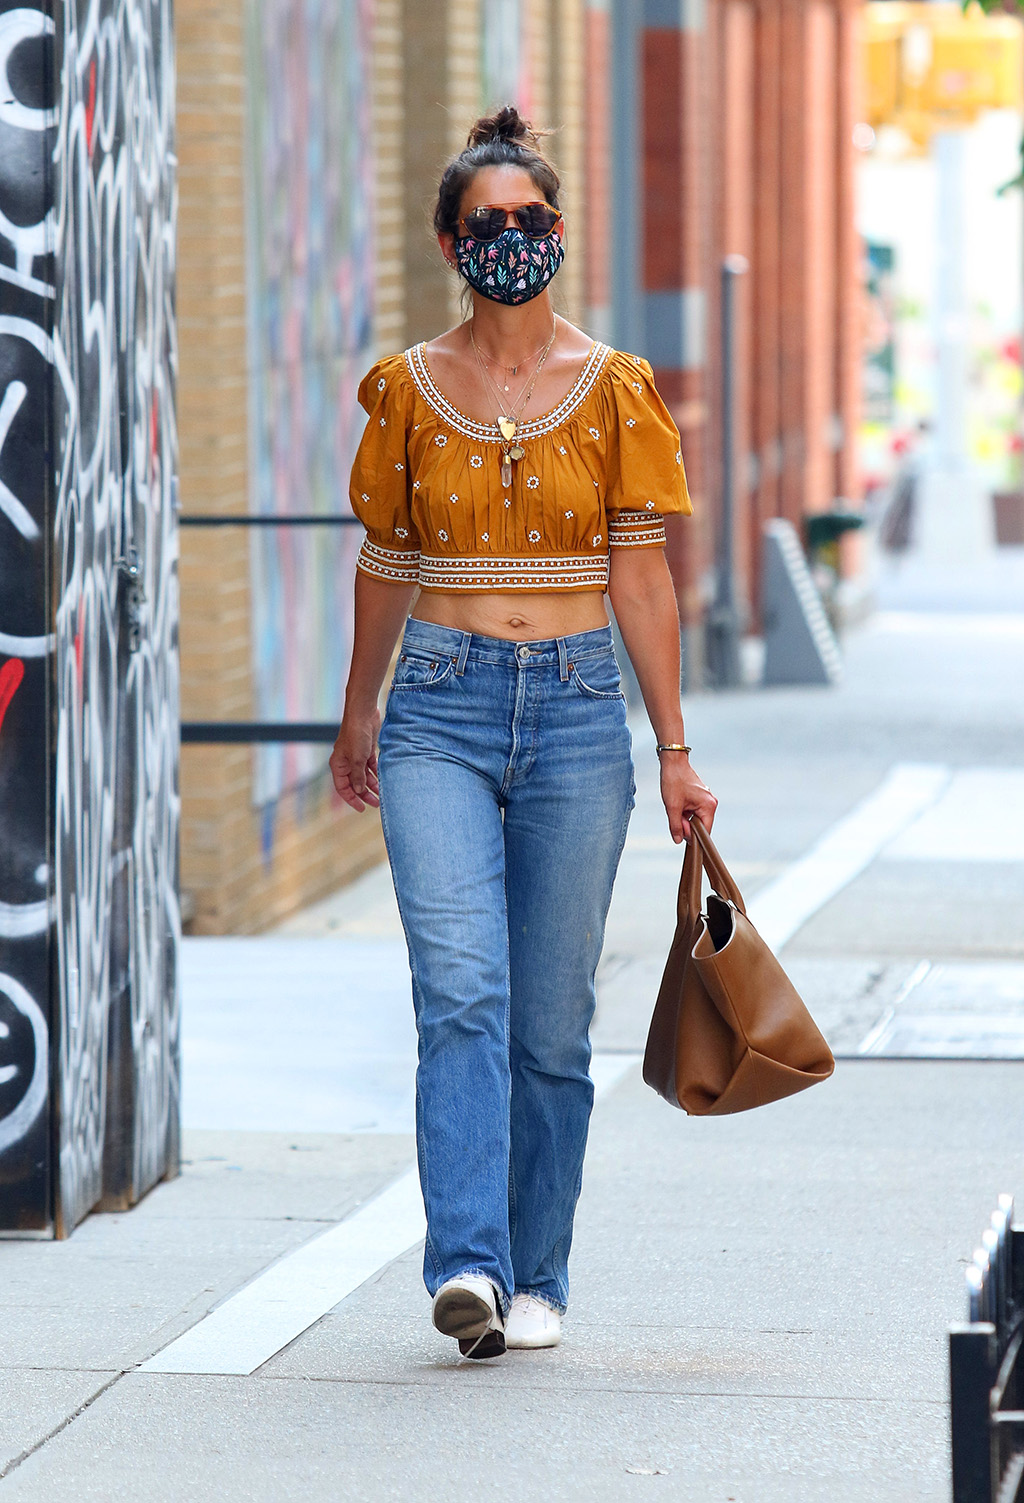 Katie Holmes, ulla johnson crop top, yellow shirt, abs, stomach, white lace-ups, mom jeans, khaite tote bag, floral mask, is seen on a hot humid day showing her toned midriff while sporting a colorful face mask as she went shopping in Manhattan's Soho area. 03 Jul 2020 Pictured: Katie Holmes. Photo credit: LRNYC / MEGA TheMegaAgency.com +1 888 505 6342 (Mega Agency TagID: MEGA686347_003.jpg) [Photo via Mega Agency]Katie Holmes is seen on a hot humid day showing her toned midriff while sporting a colorful face mask as she went shopping in Manhattan's Soho area. 03 Jul 2020 Pictured: Katie Holmes. Photo credit: LRNYC / MEGA TheMegaAgency.com +1 888 505 6342 (Mega Agency TagID: MEGA686347_001.jpg) [Photo via Mega Agency]